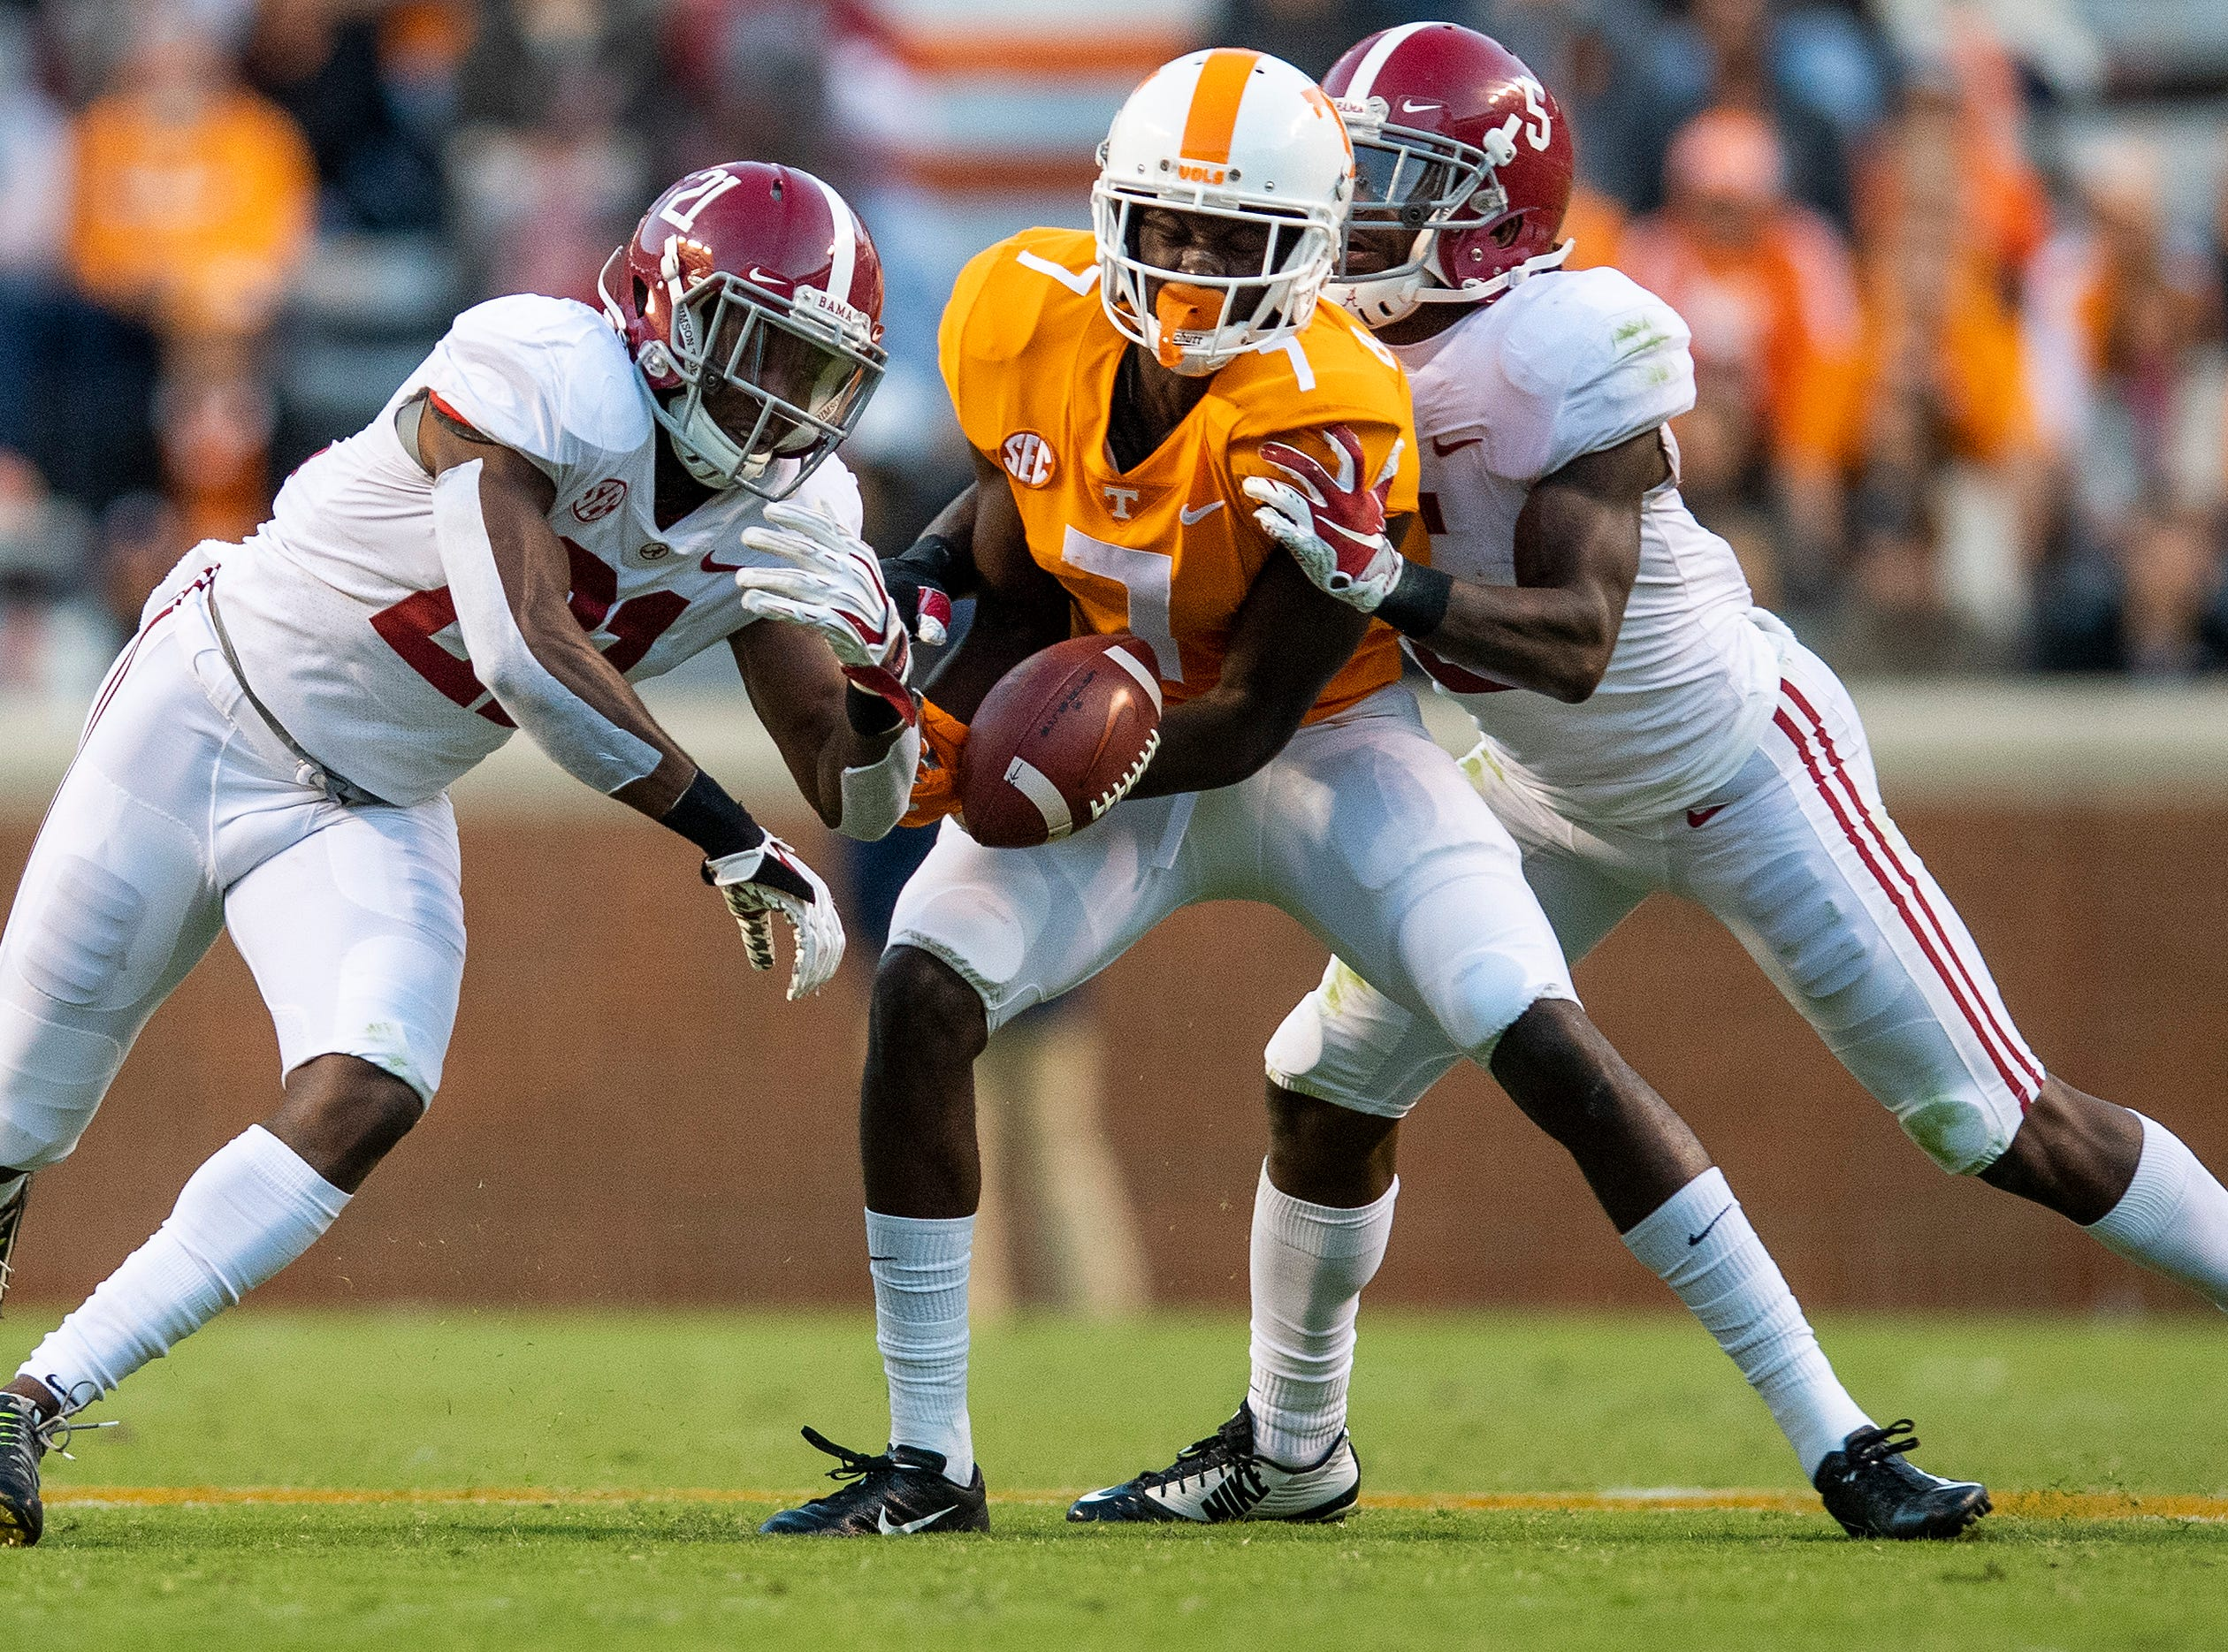 Alabama defensive back Jared Mayden (21) breaks up a pass intended for Tennessee wide receiver Brandon Edward Johnson (7) in second half action at Neyland Stadium in Knoxville, Tn., on Saturday October 20, 2018.